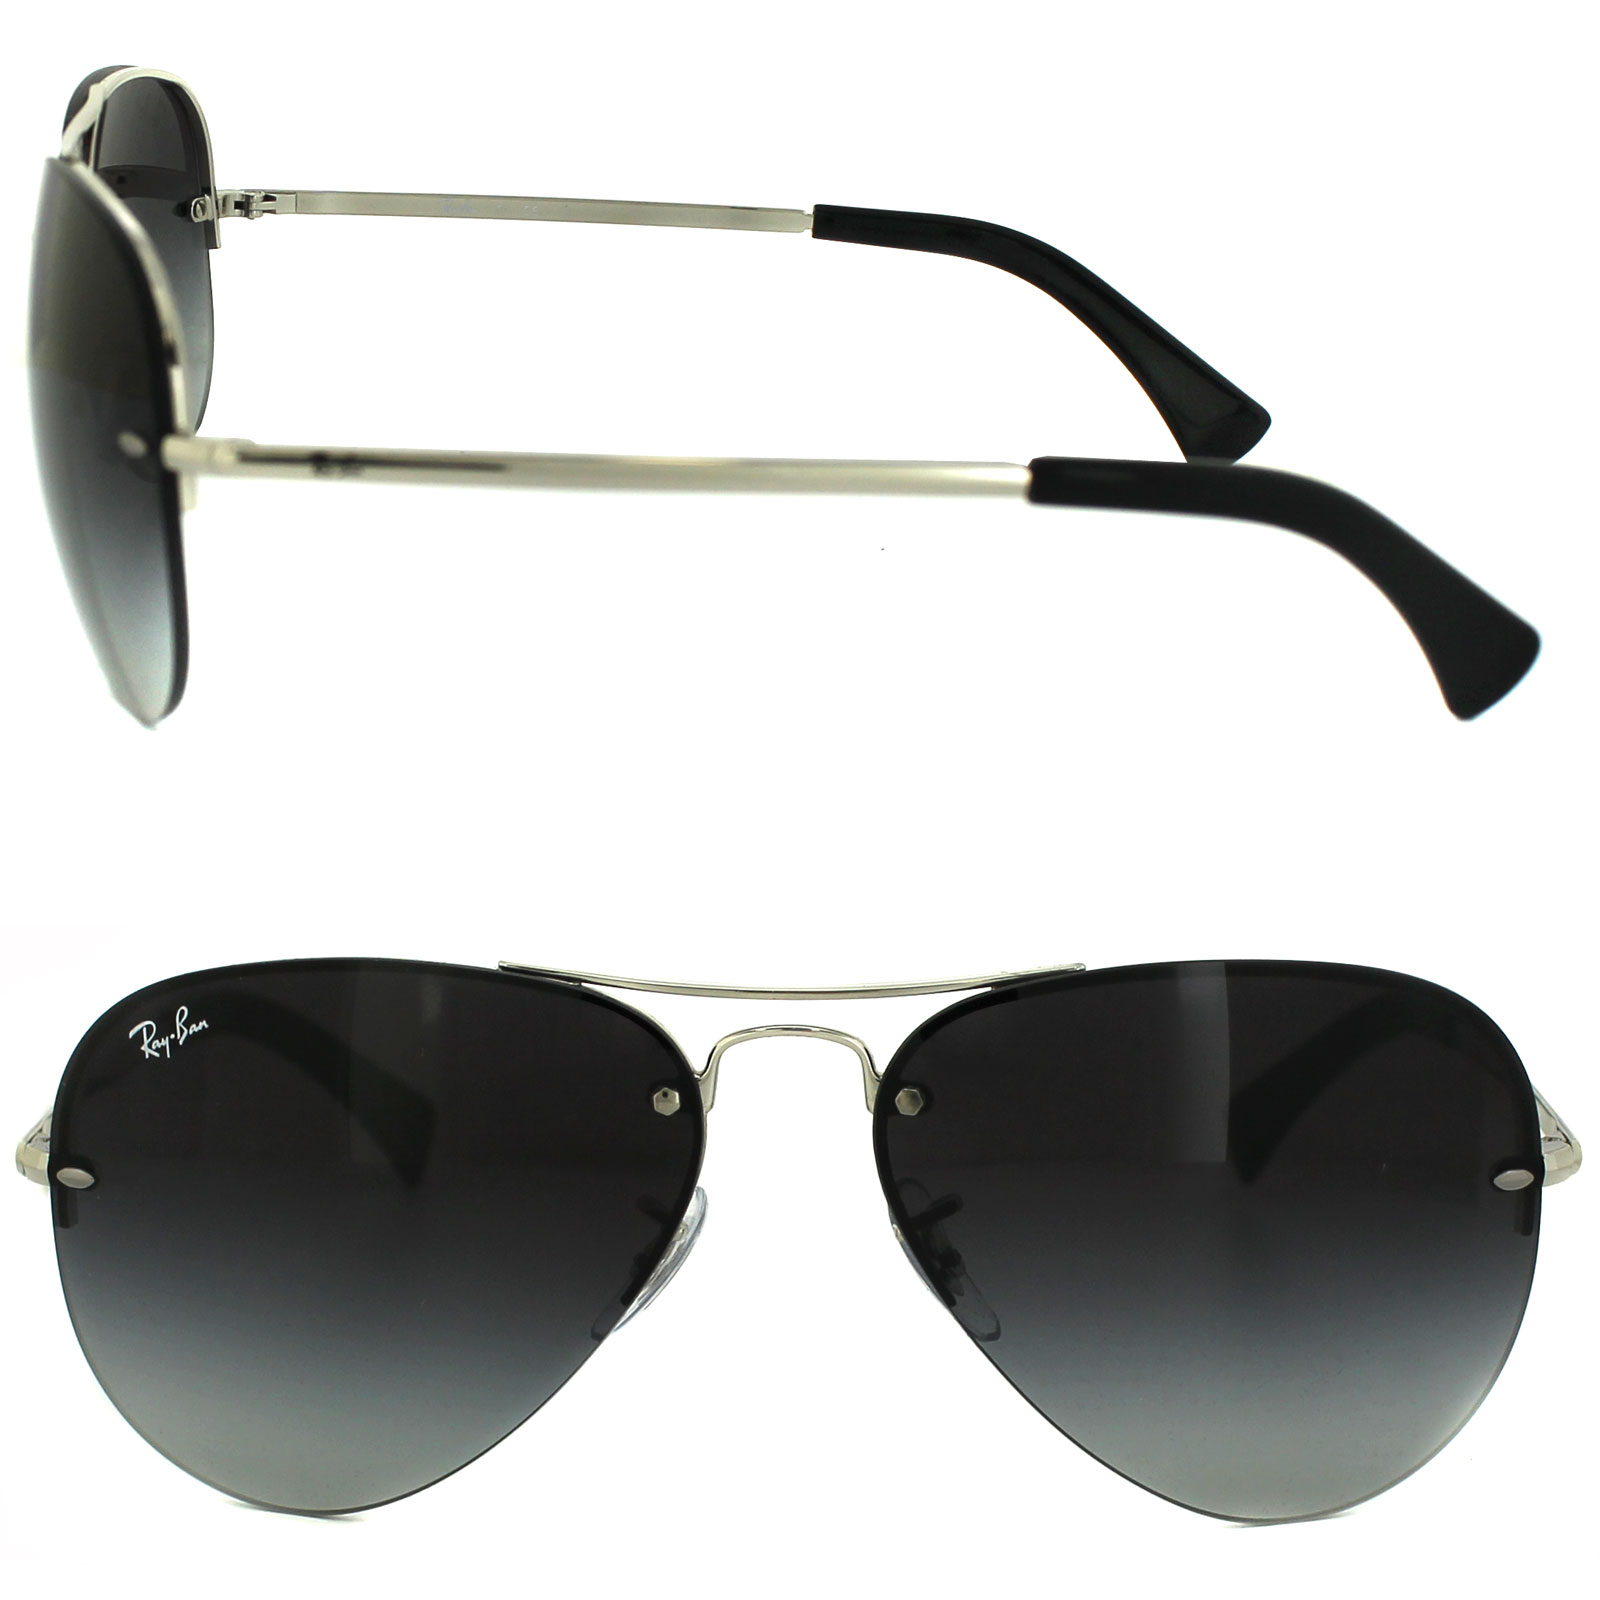 Cheap Ray Ban 3449 Sunglasses Discounted Sunglasses